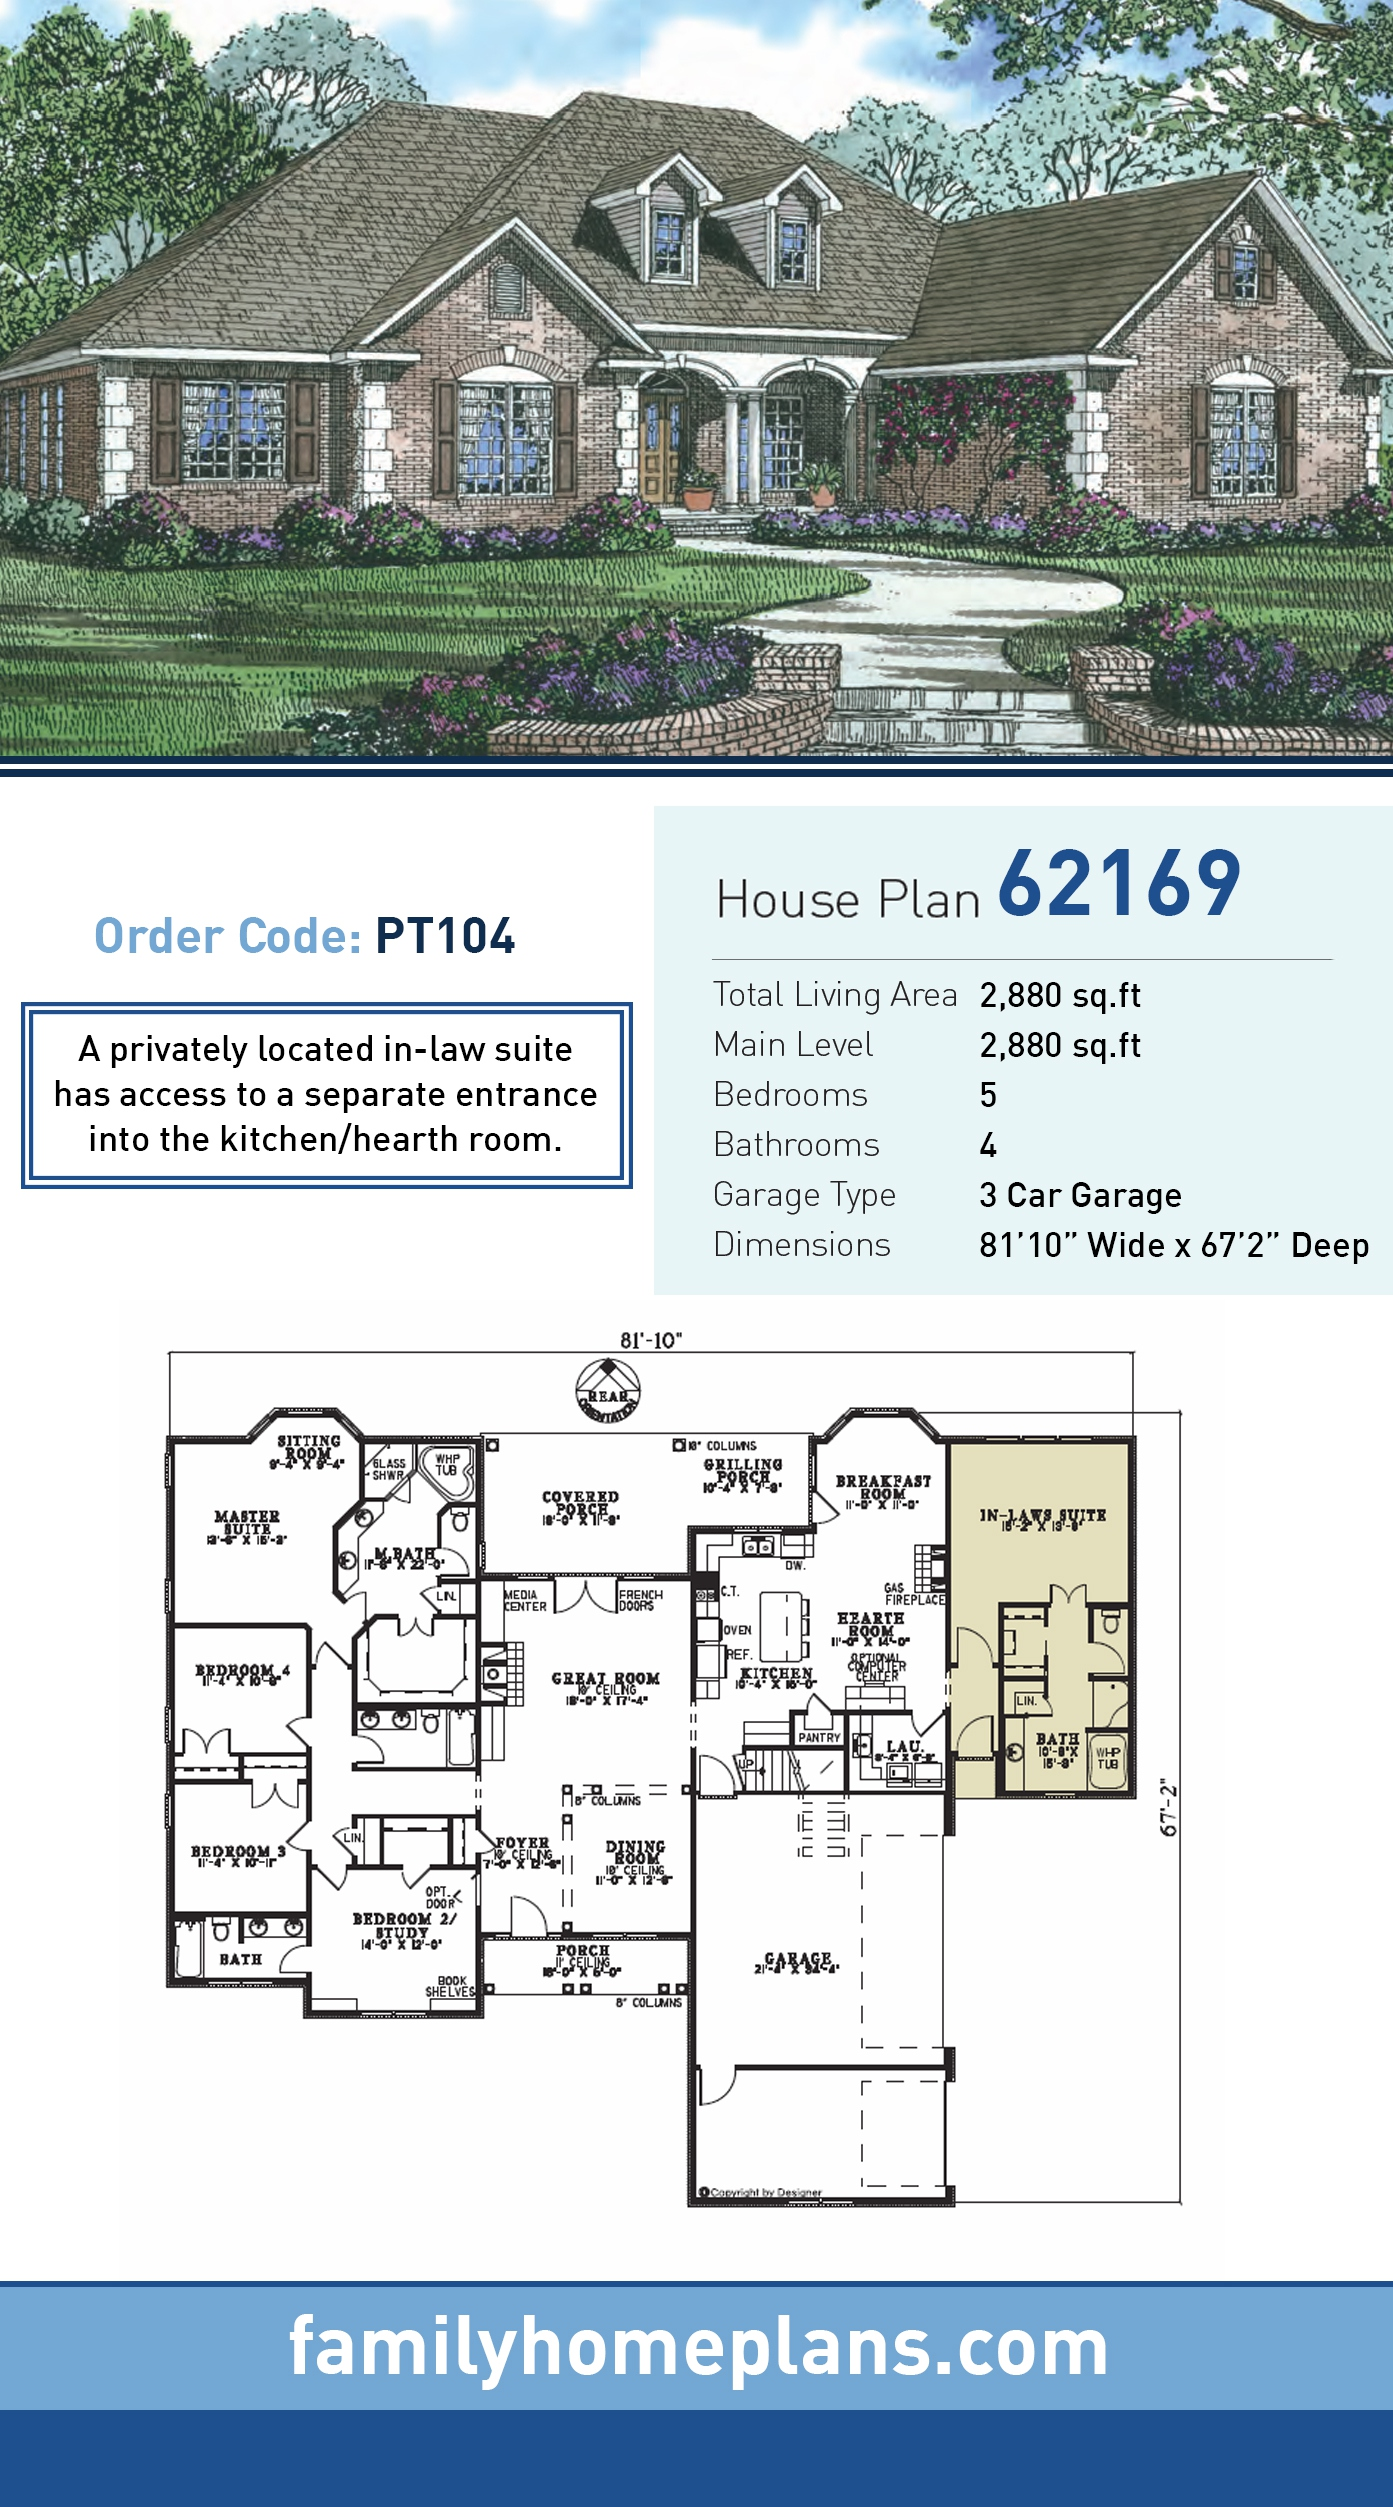 European, Traditional House Plan 62169 with 5 Beds, 4 Baths, 3 Car Garage